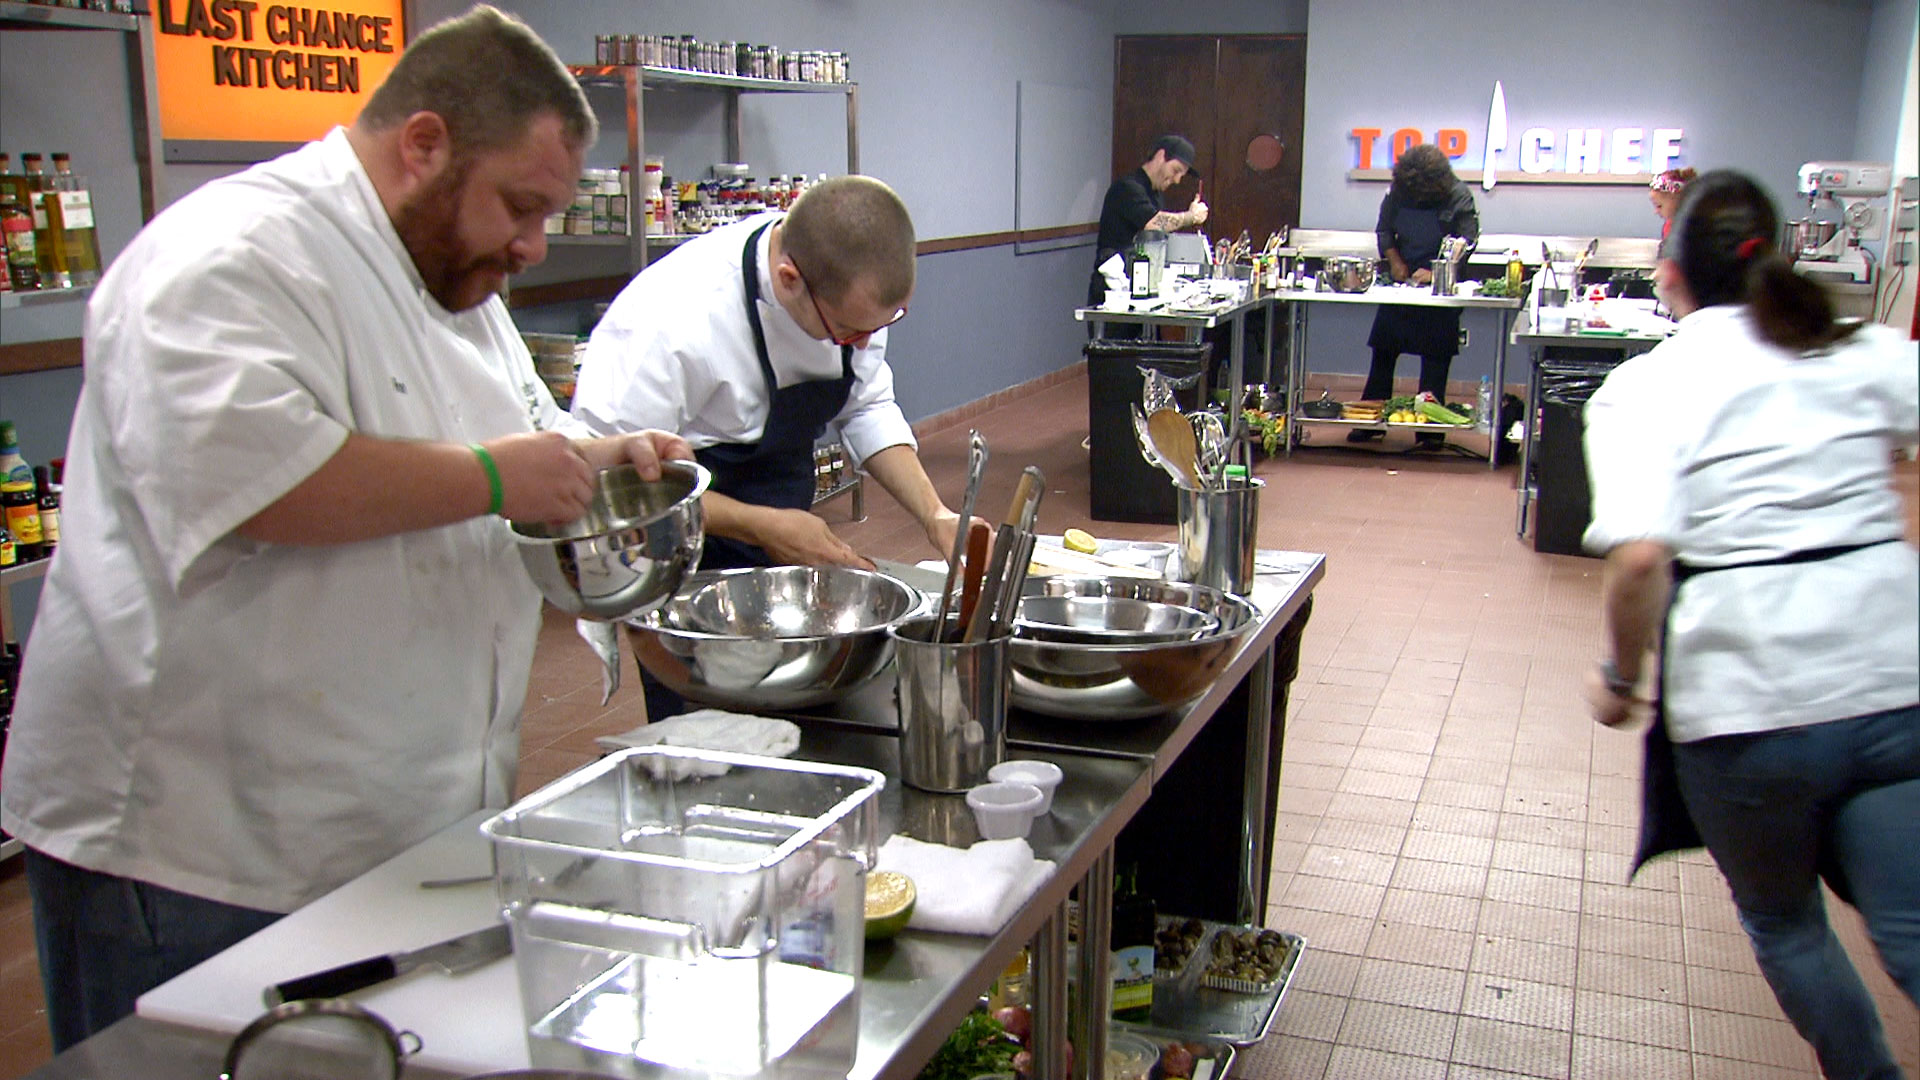 Watch Top Chef Videos | Bravo TV Official Site